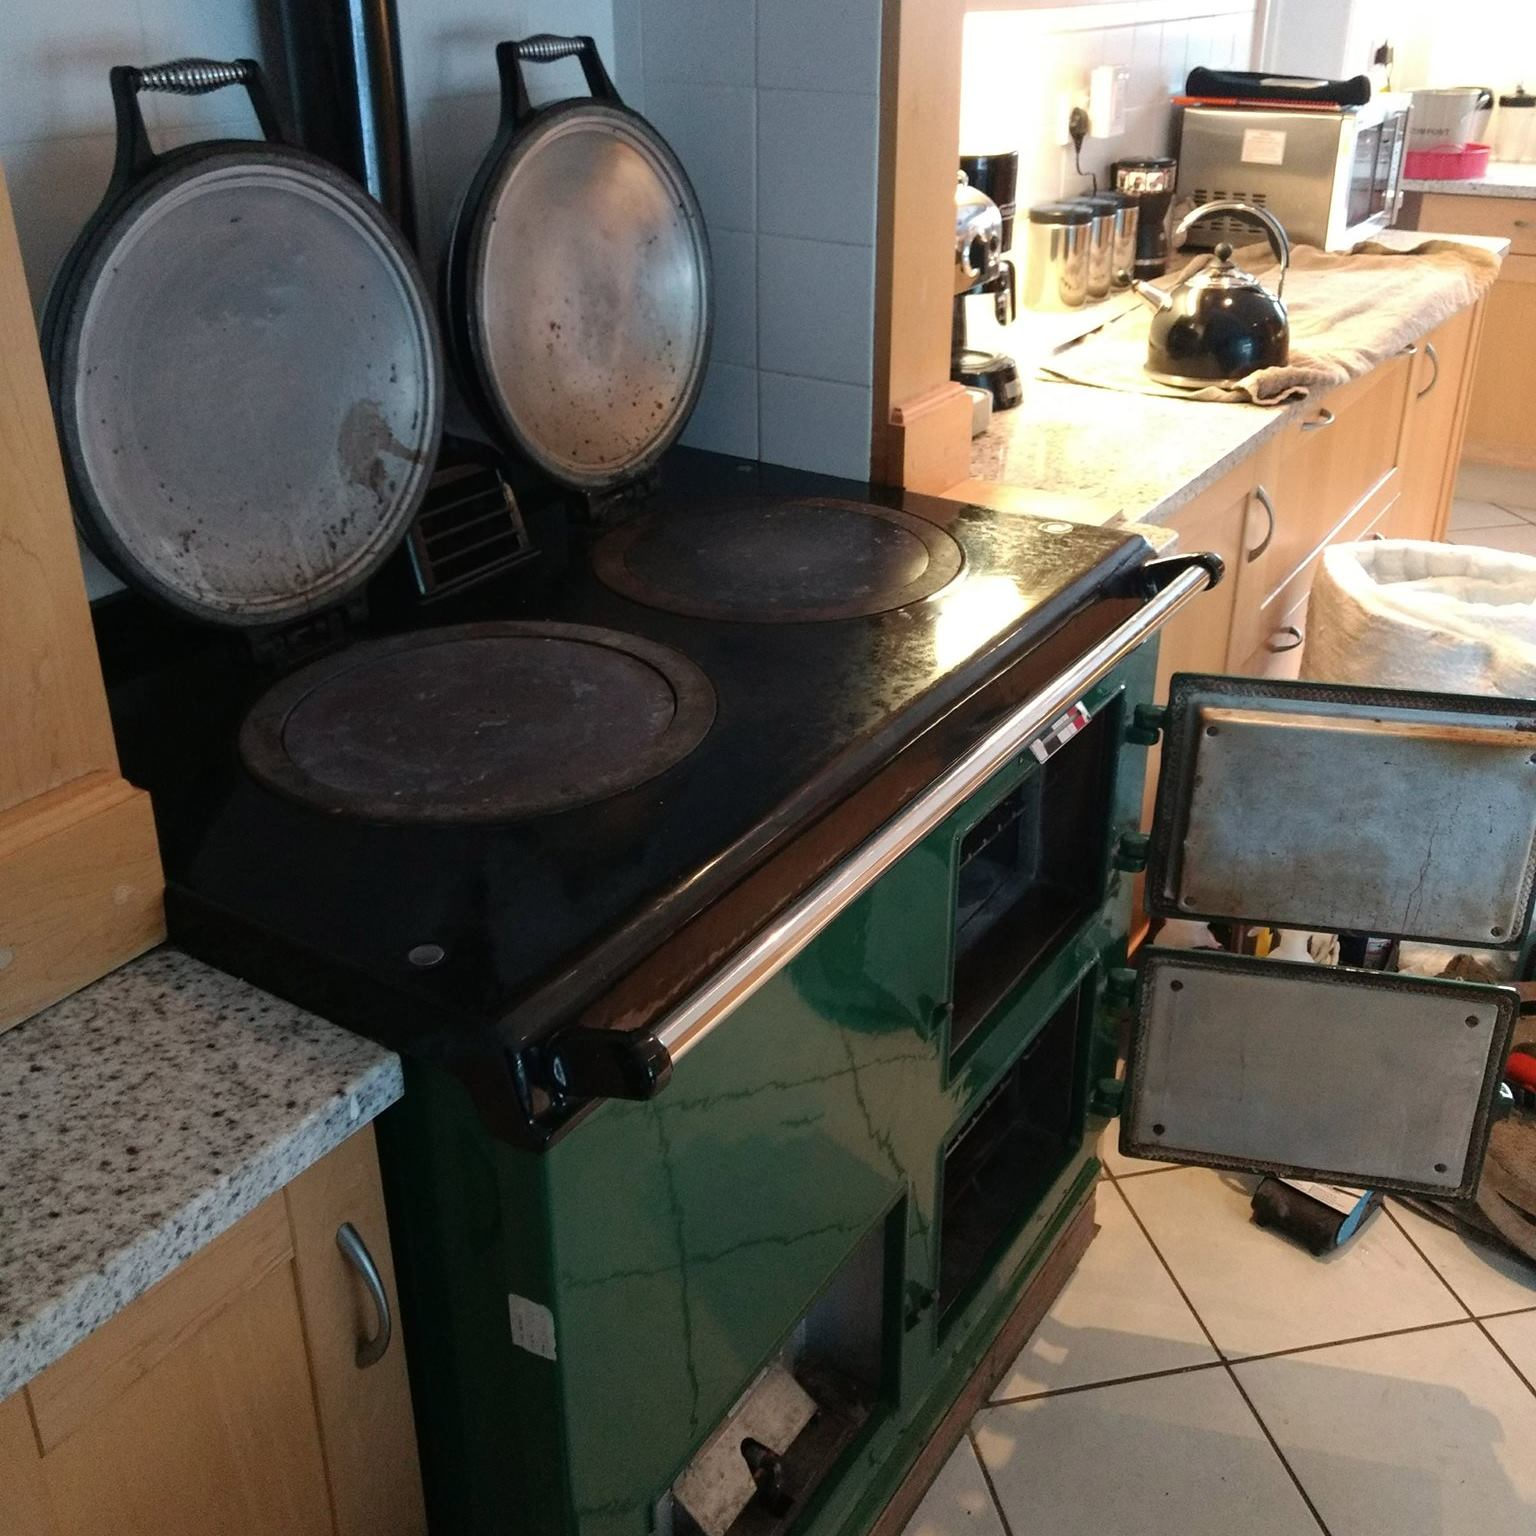 Green Aga range cooker with lids up